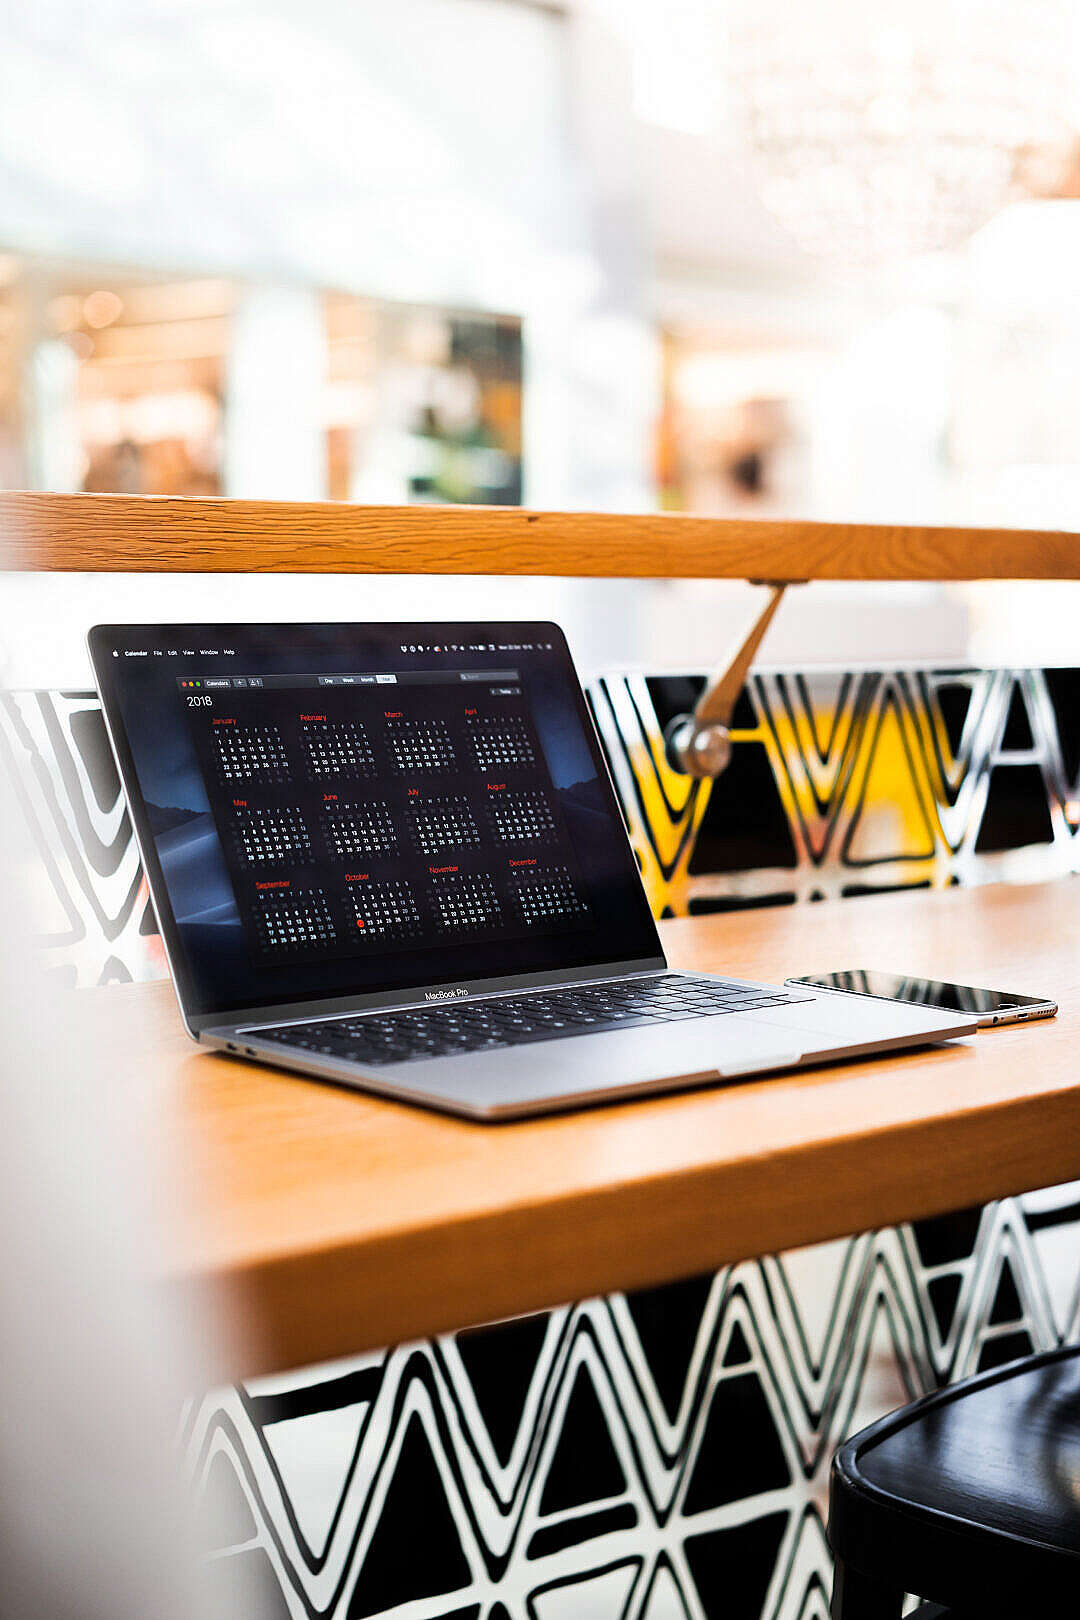 Download Modern Laptop in Café Vertical FREE Stock Photo